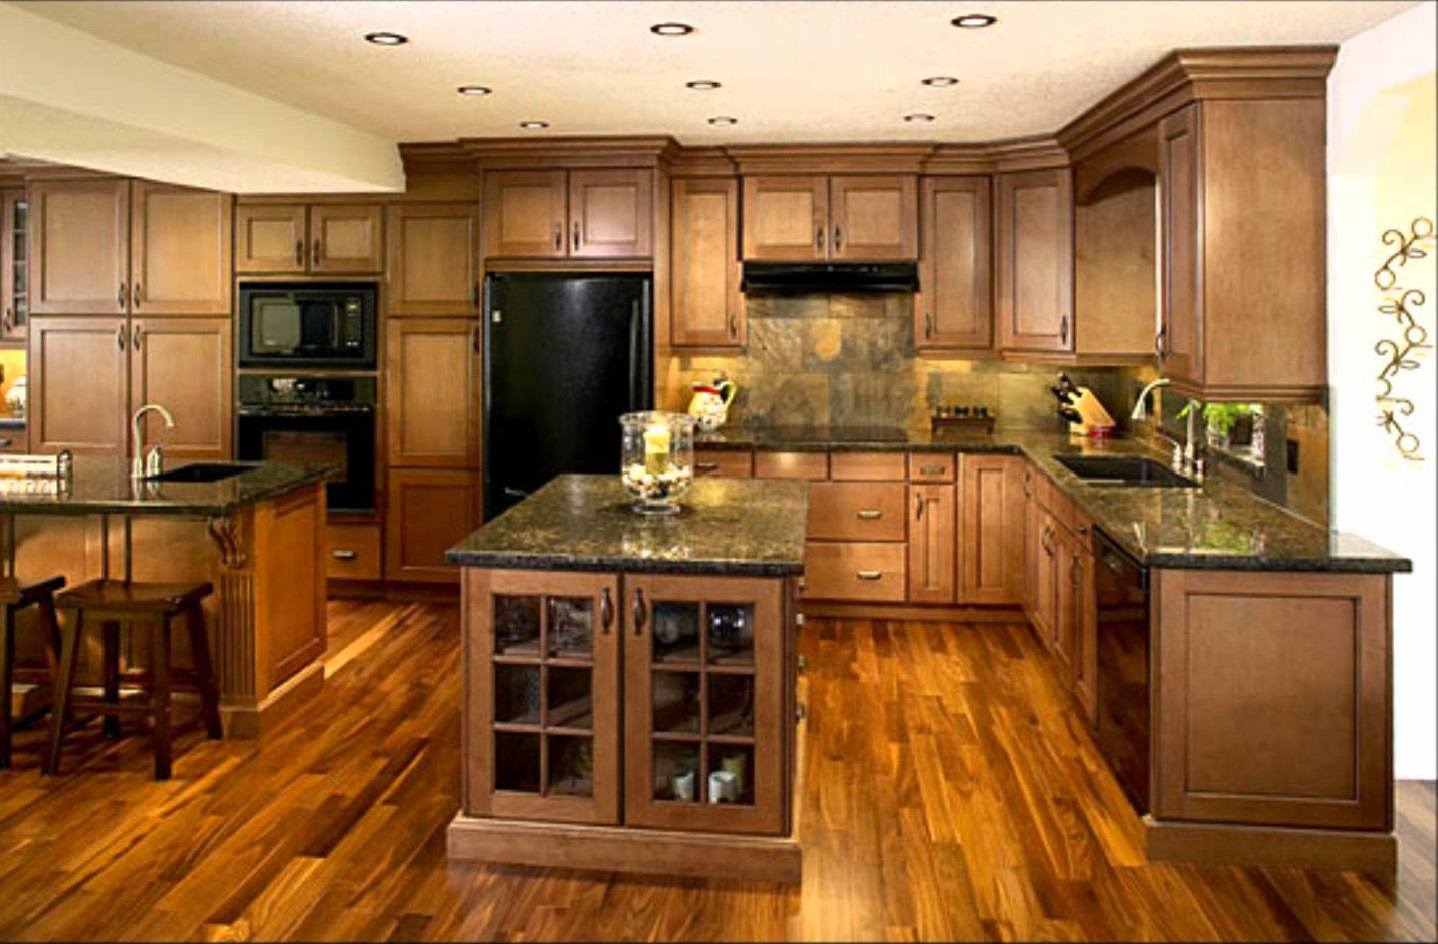 Traditional Kitchen with Full of Wood Accents for Furnishing and Flooring